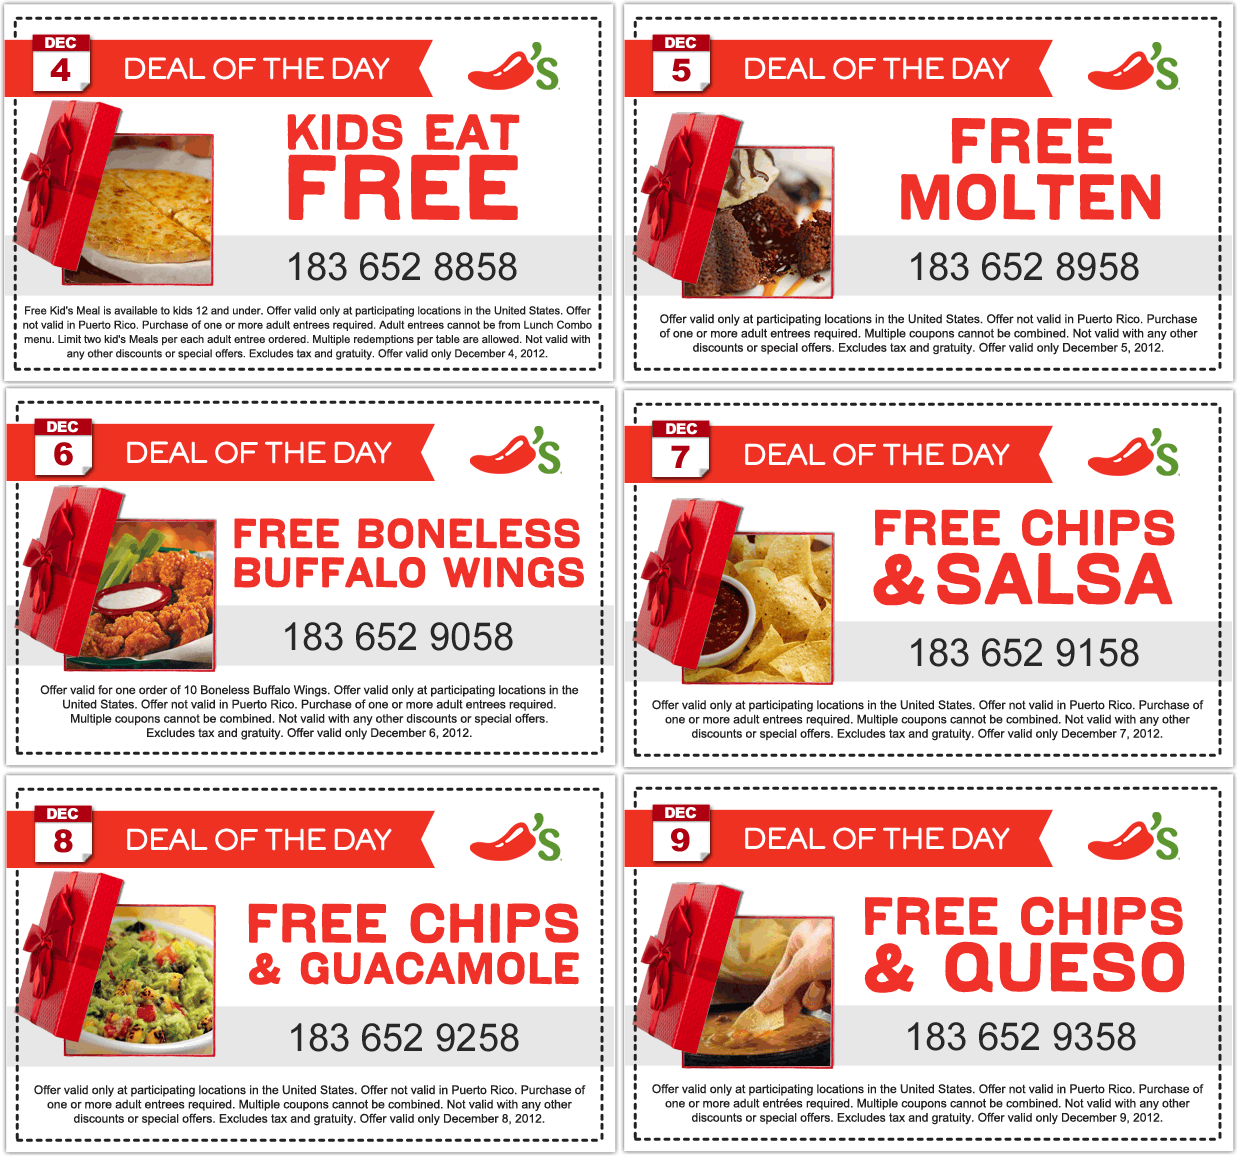 Free 10pc Boneless Wings Day And More This Week At Chilis Restaurants Coupon Via The Coupons App Chilis Coupons Free Printable Coupons Fast Food Coupons